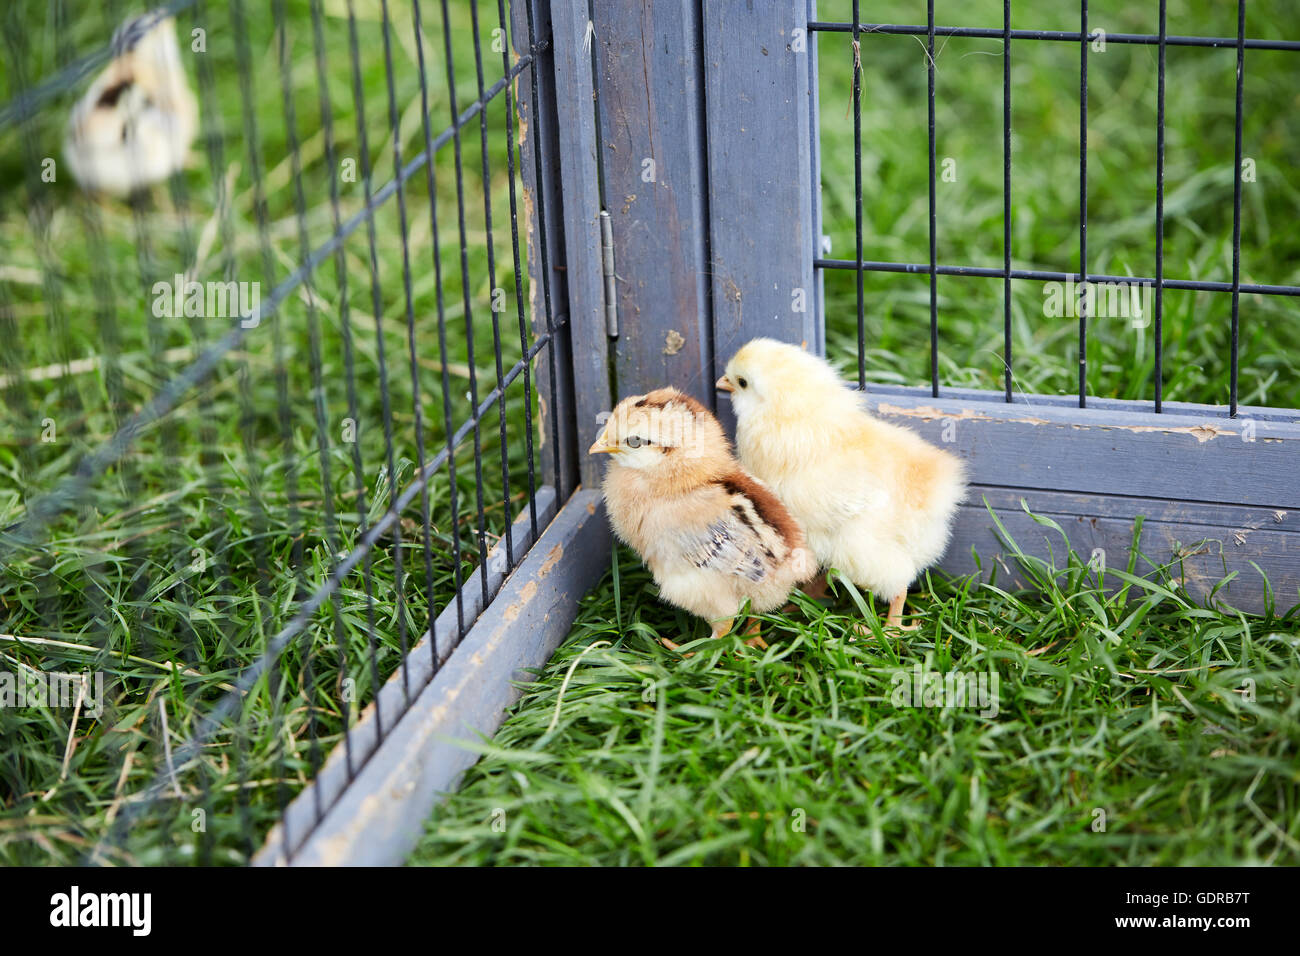 Three chicks breaking out off the cage in the garden - Stock Image